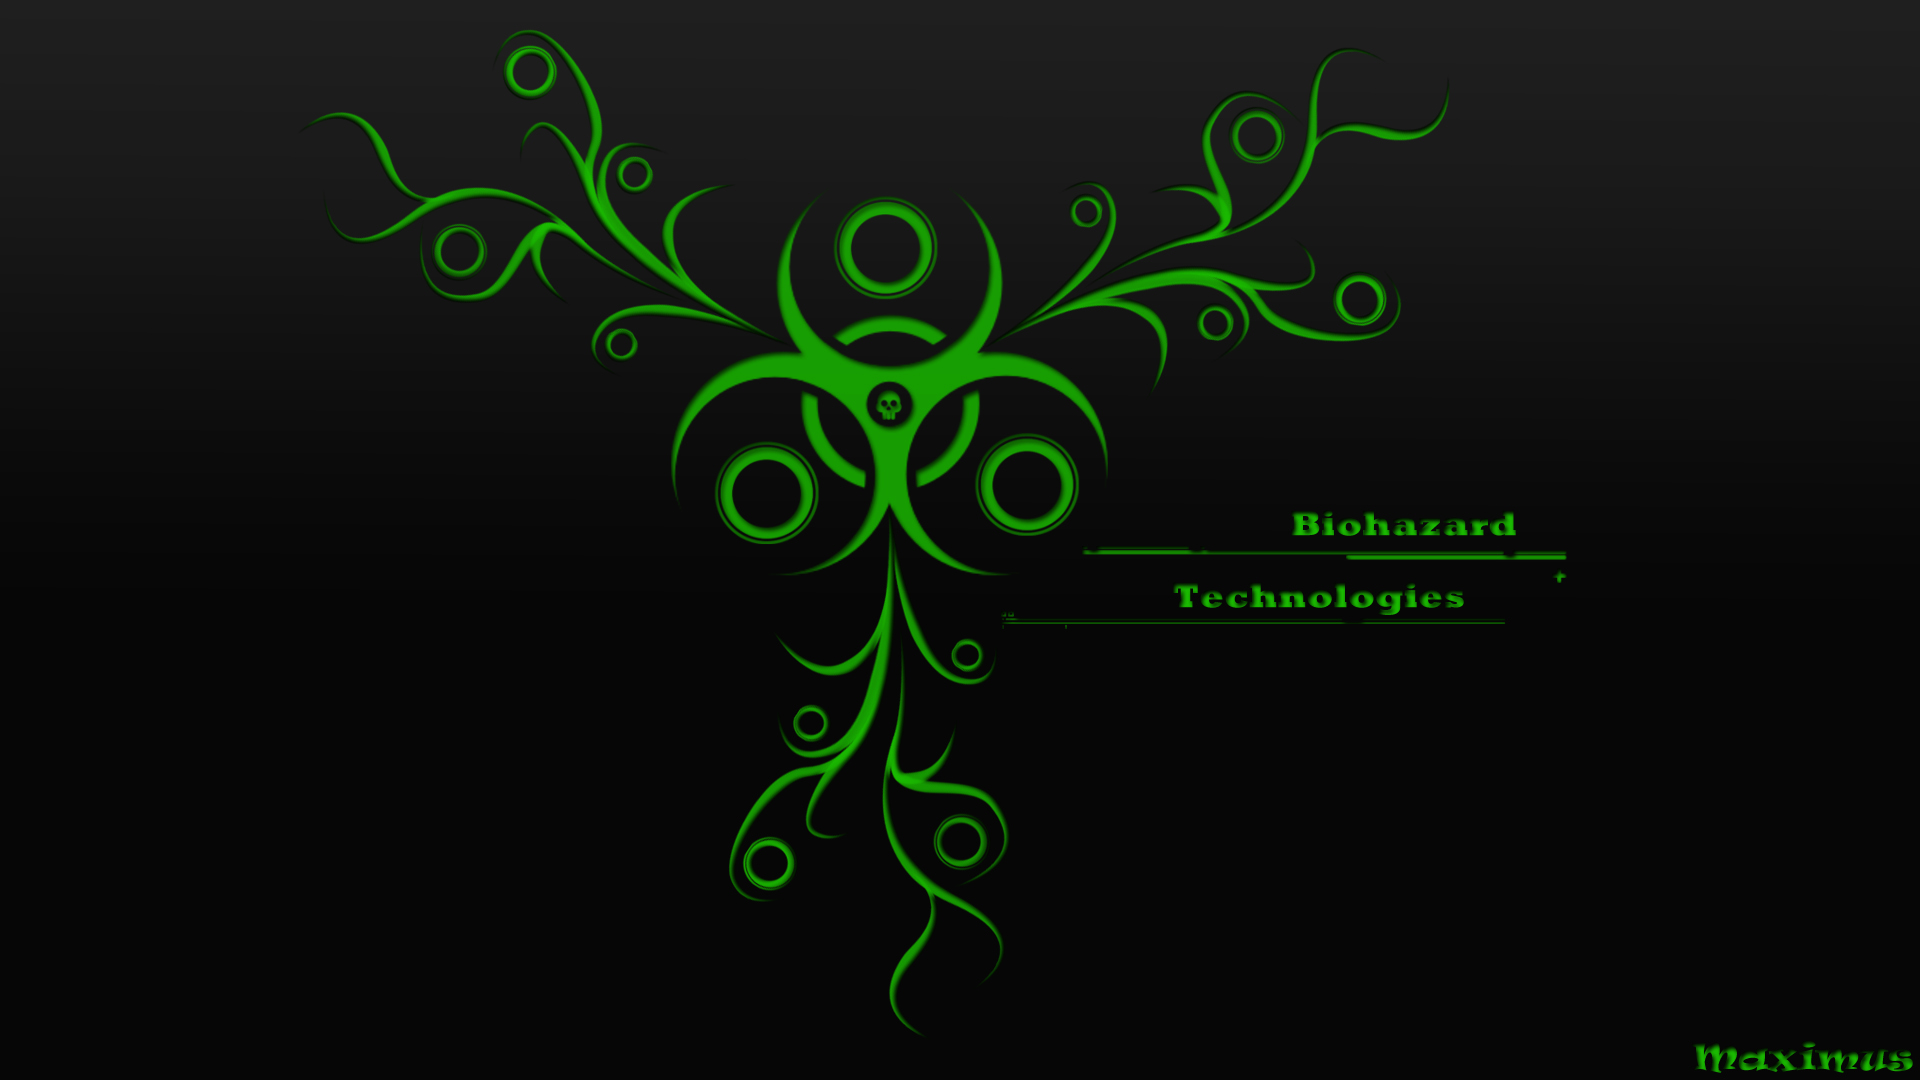 wallpaper background biohazard abstract wallpapers artistic 1920x1080